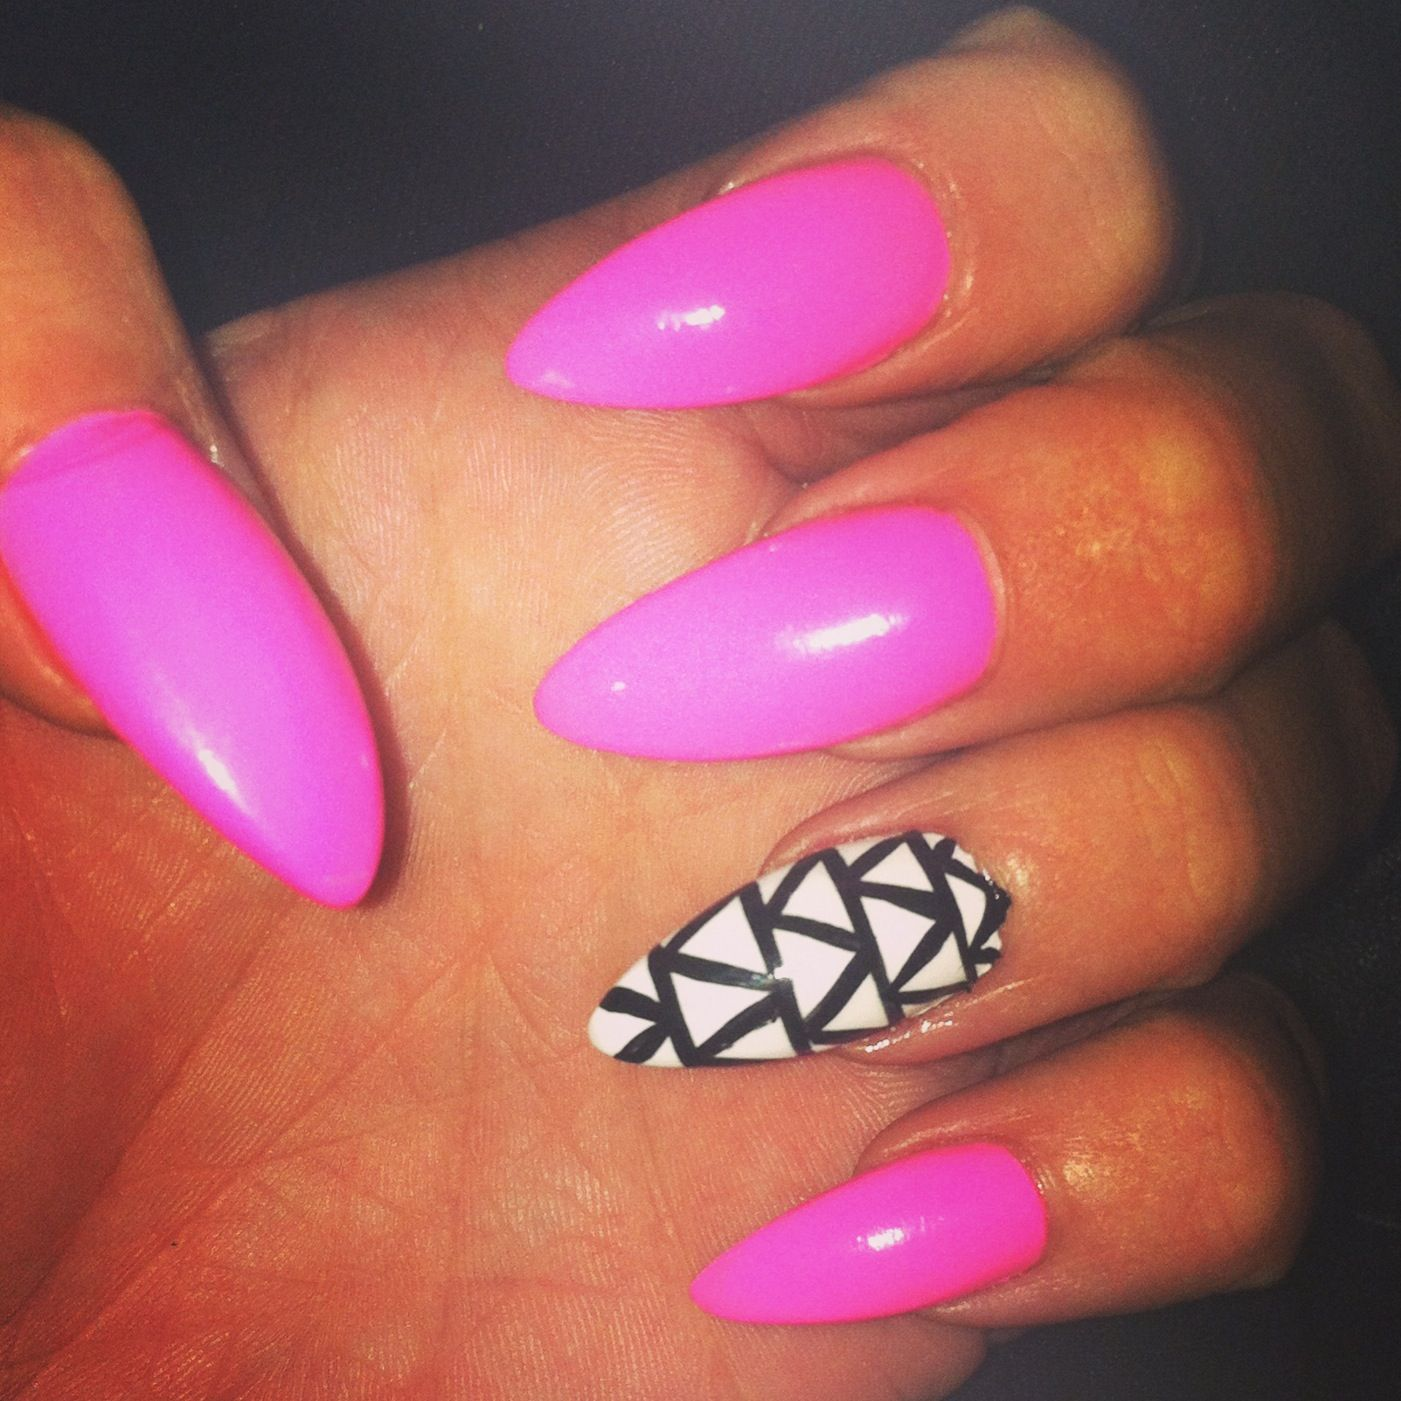 Stiletto nails | nailz | Pinterest | Fun nails, Make up and Nail nail